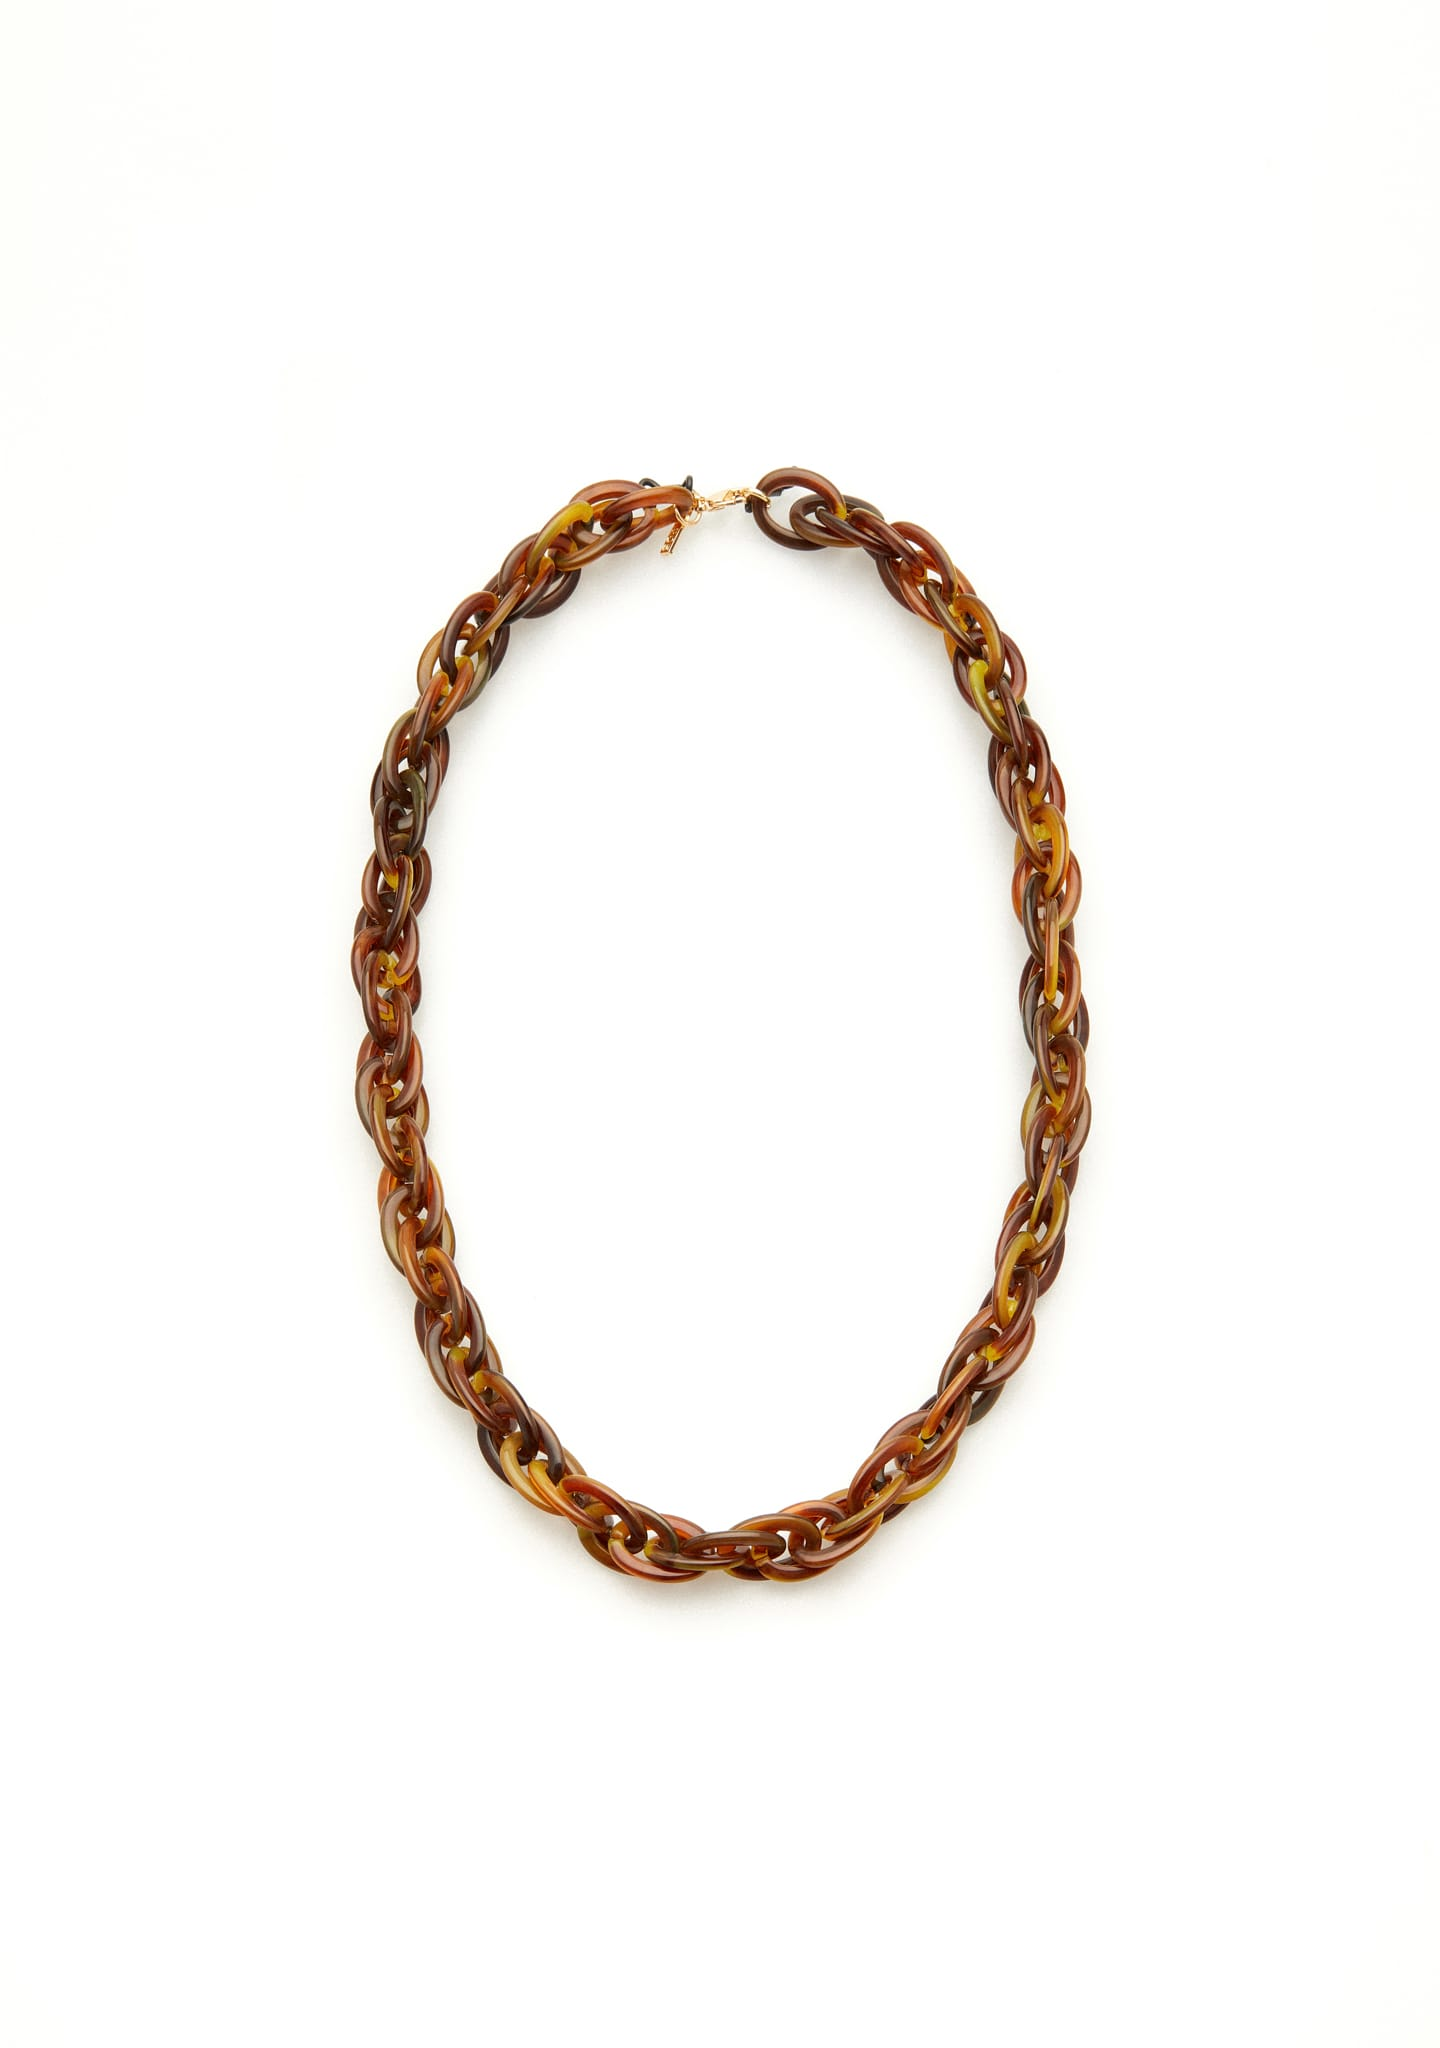 DOUBLE LINK RESIN CHAIN